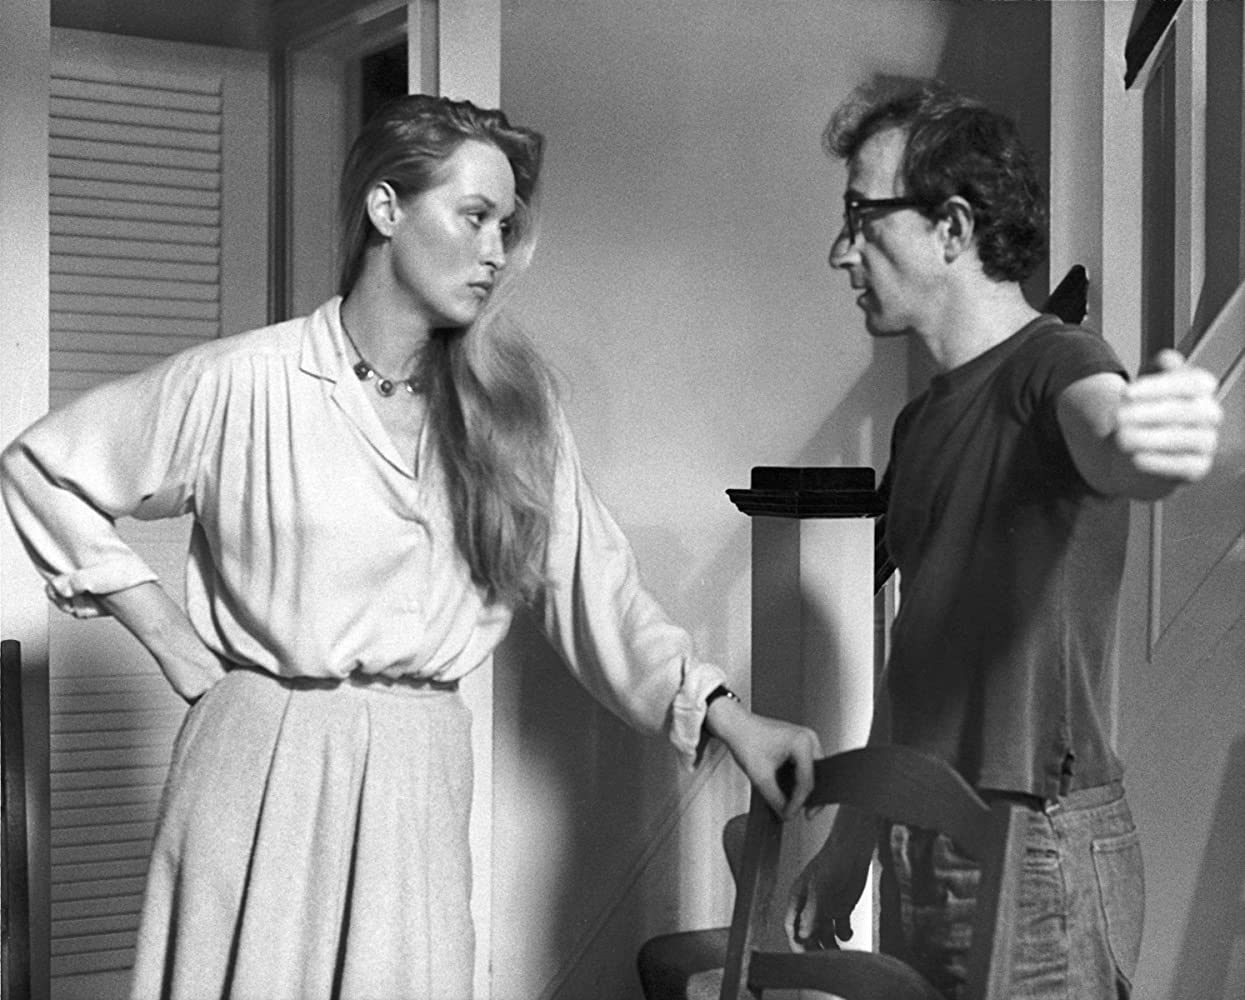 Woody Allen and Meryl Streep in Manhattan (1979)